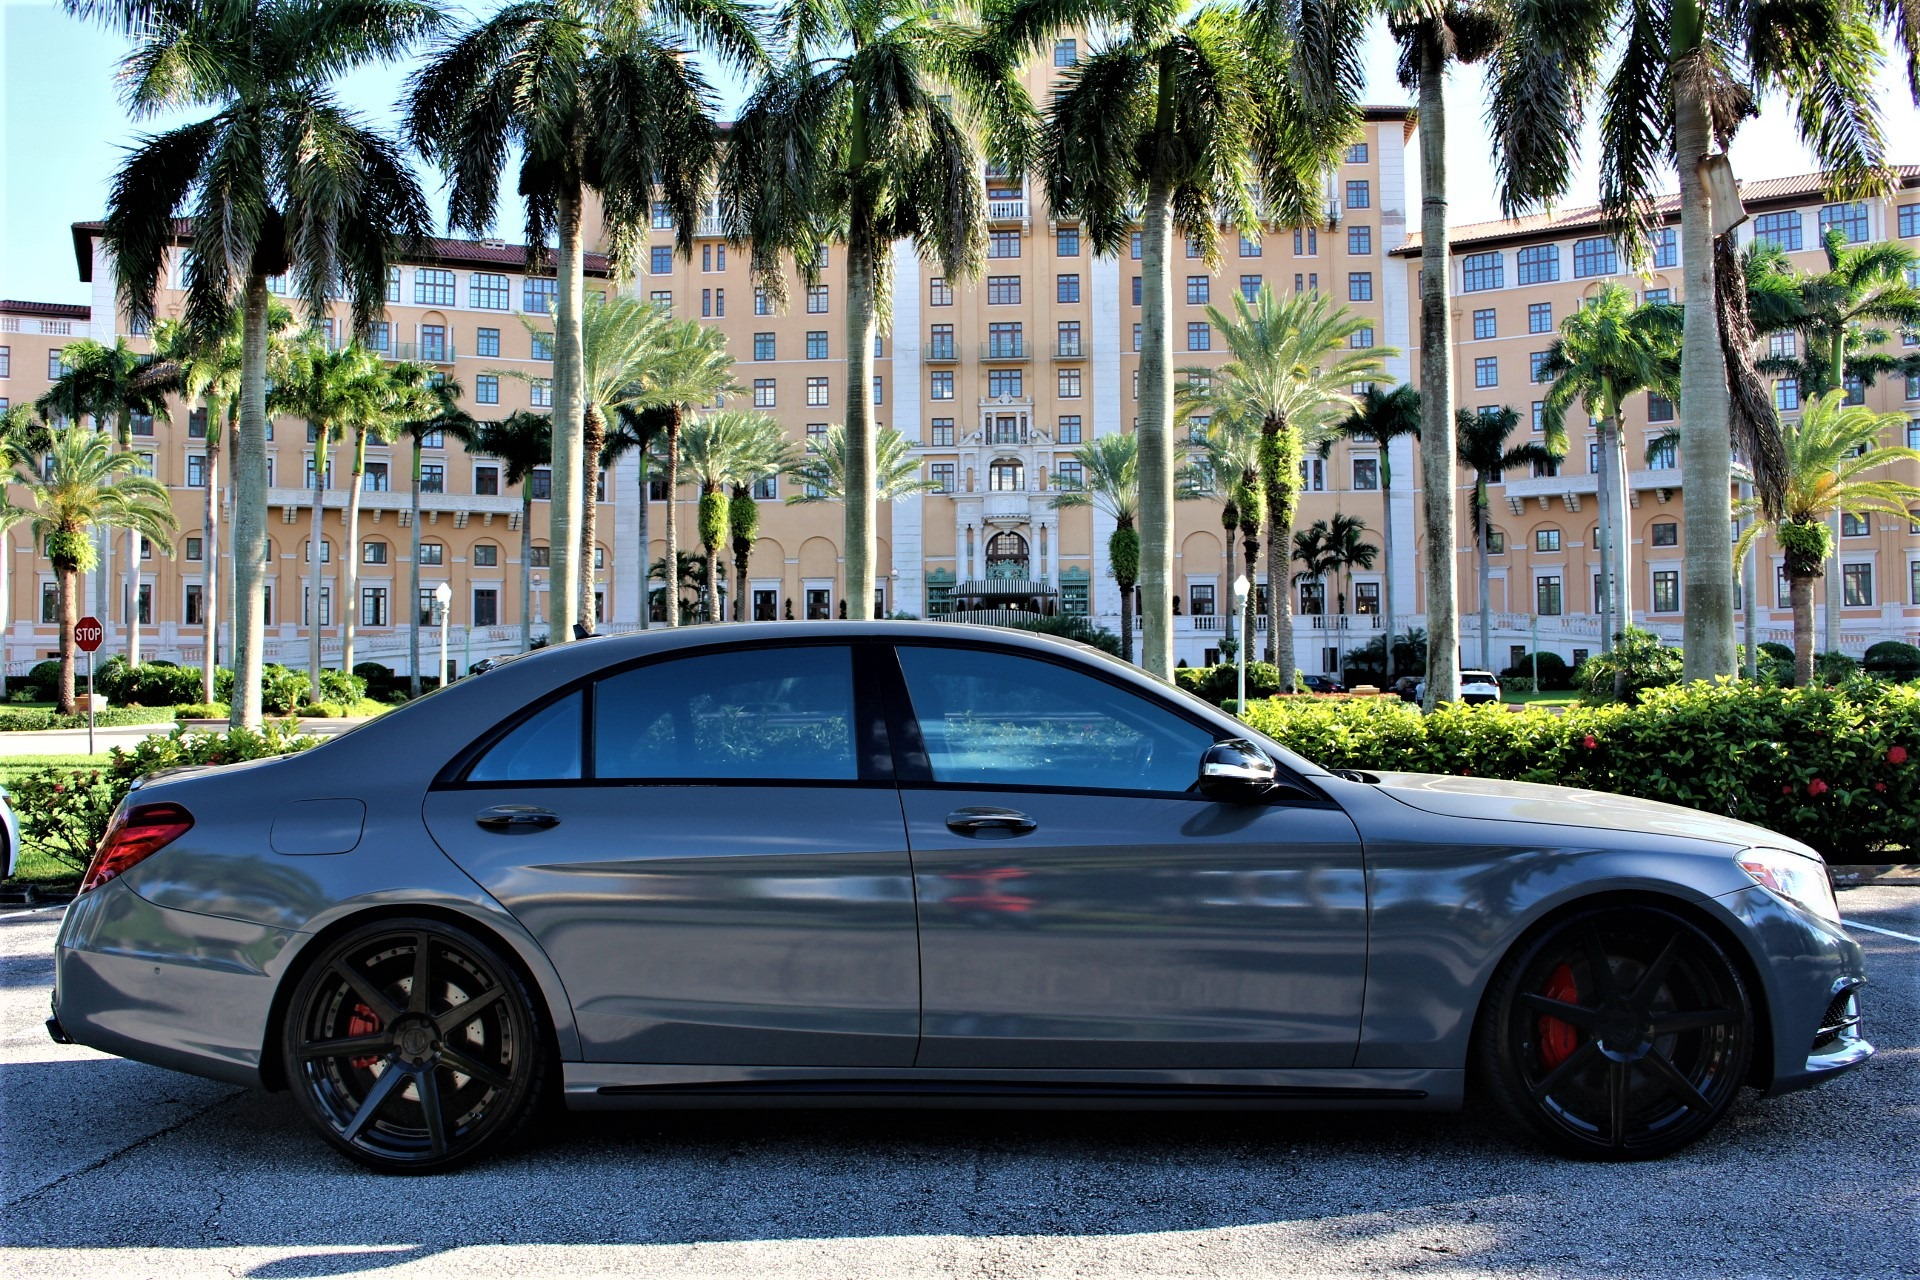 Used 2014 Mercedes-Benz S-Class S 550 for sale Sold at The Gables Sports Cars in Miami FL 33146 1